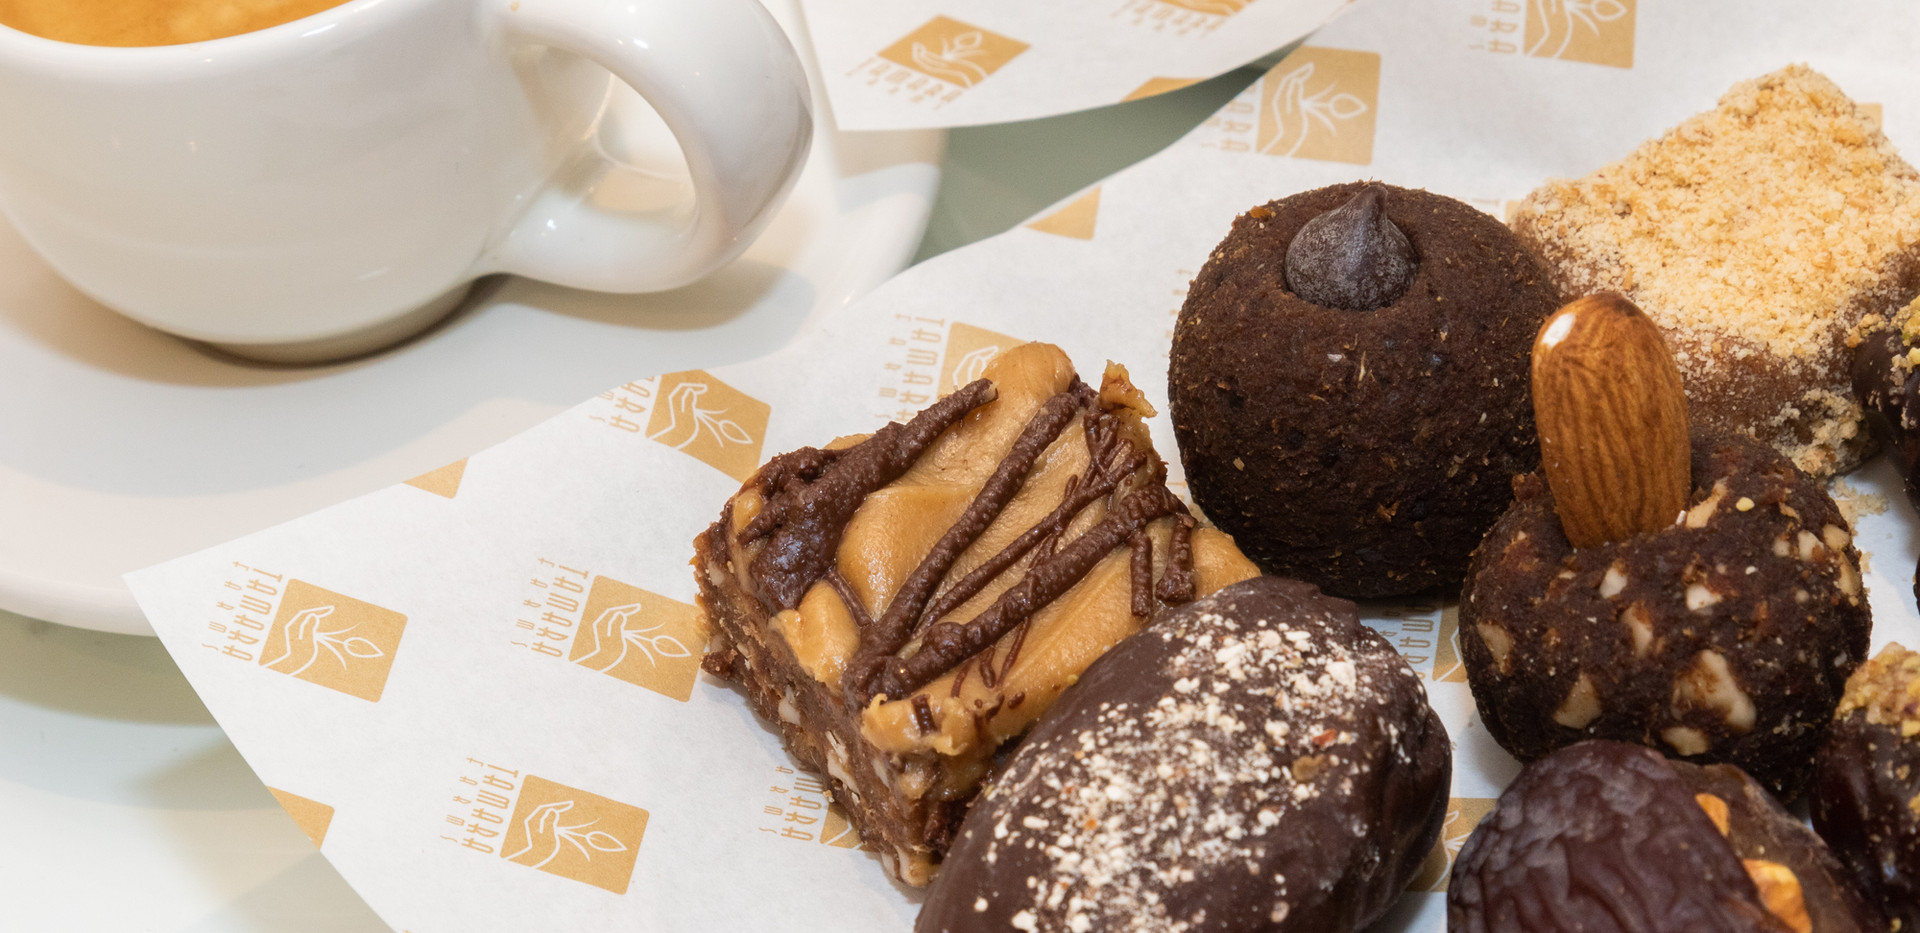 Dates sweets with coffee